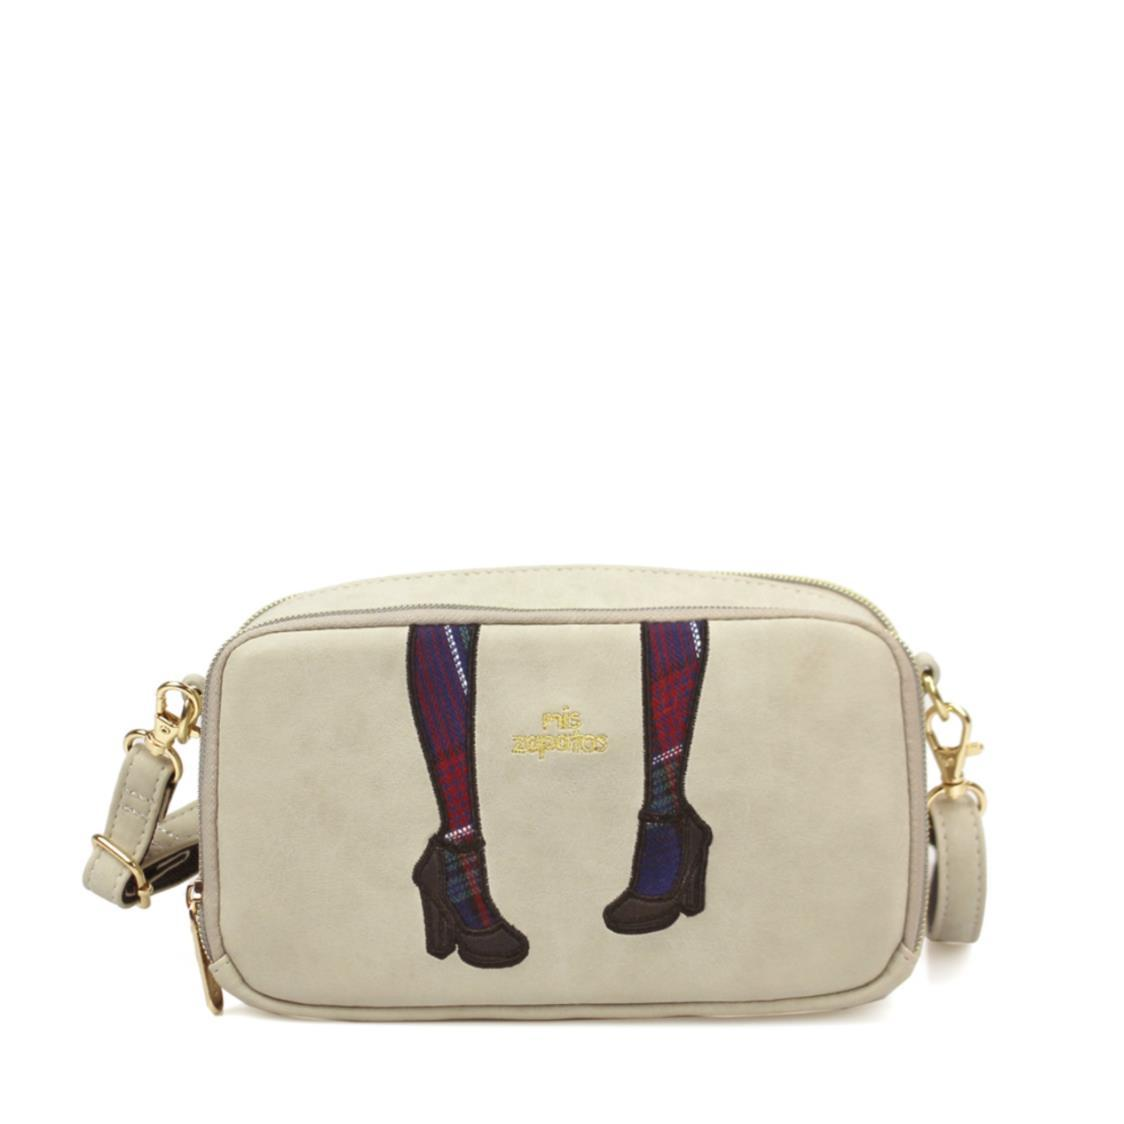 2-Way Tights Slingbag